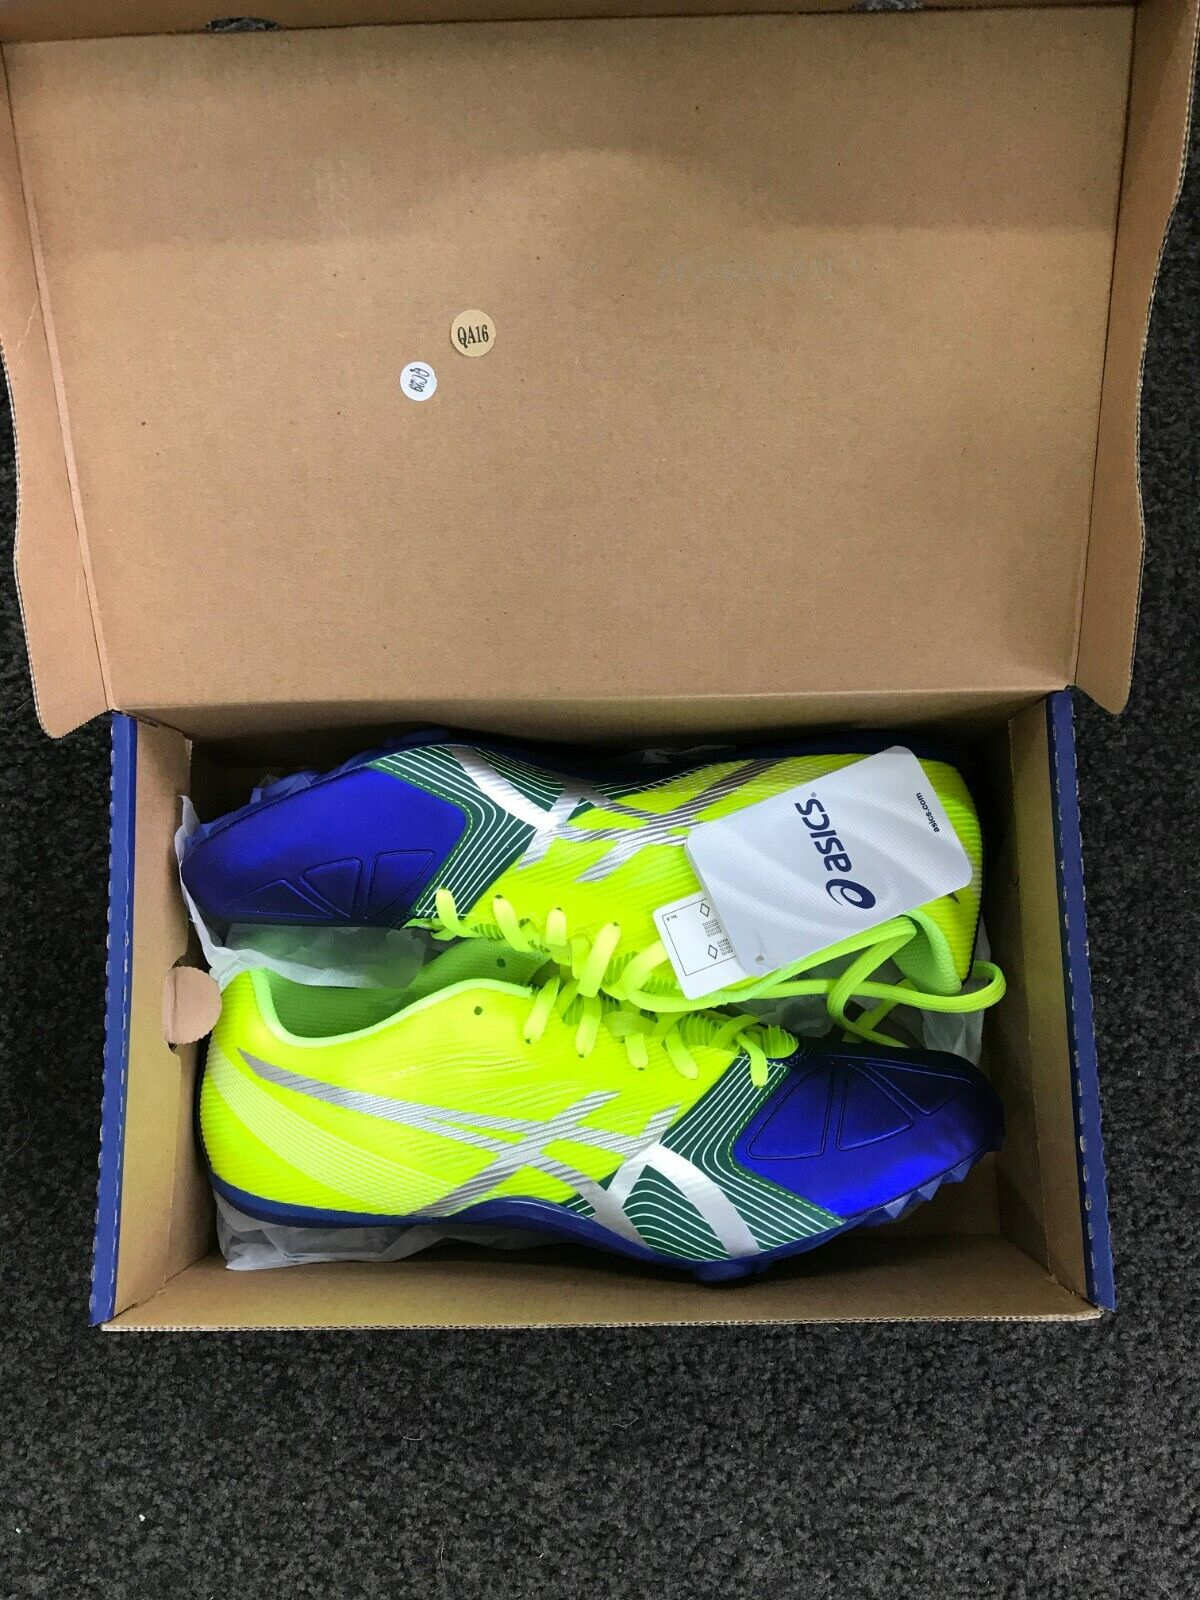 New asics hypersprint  6 spike UK size 7.5  order now lowest prices